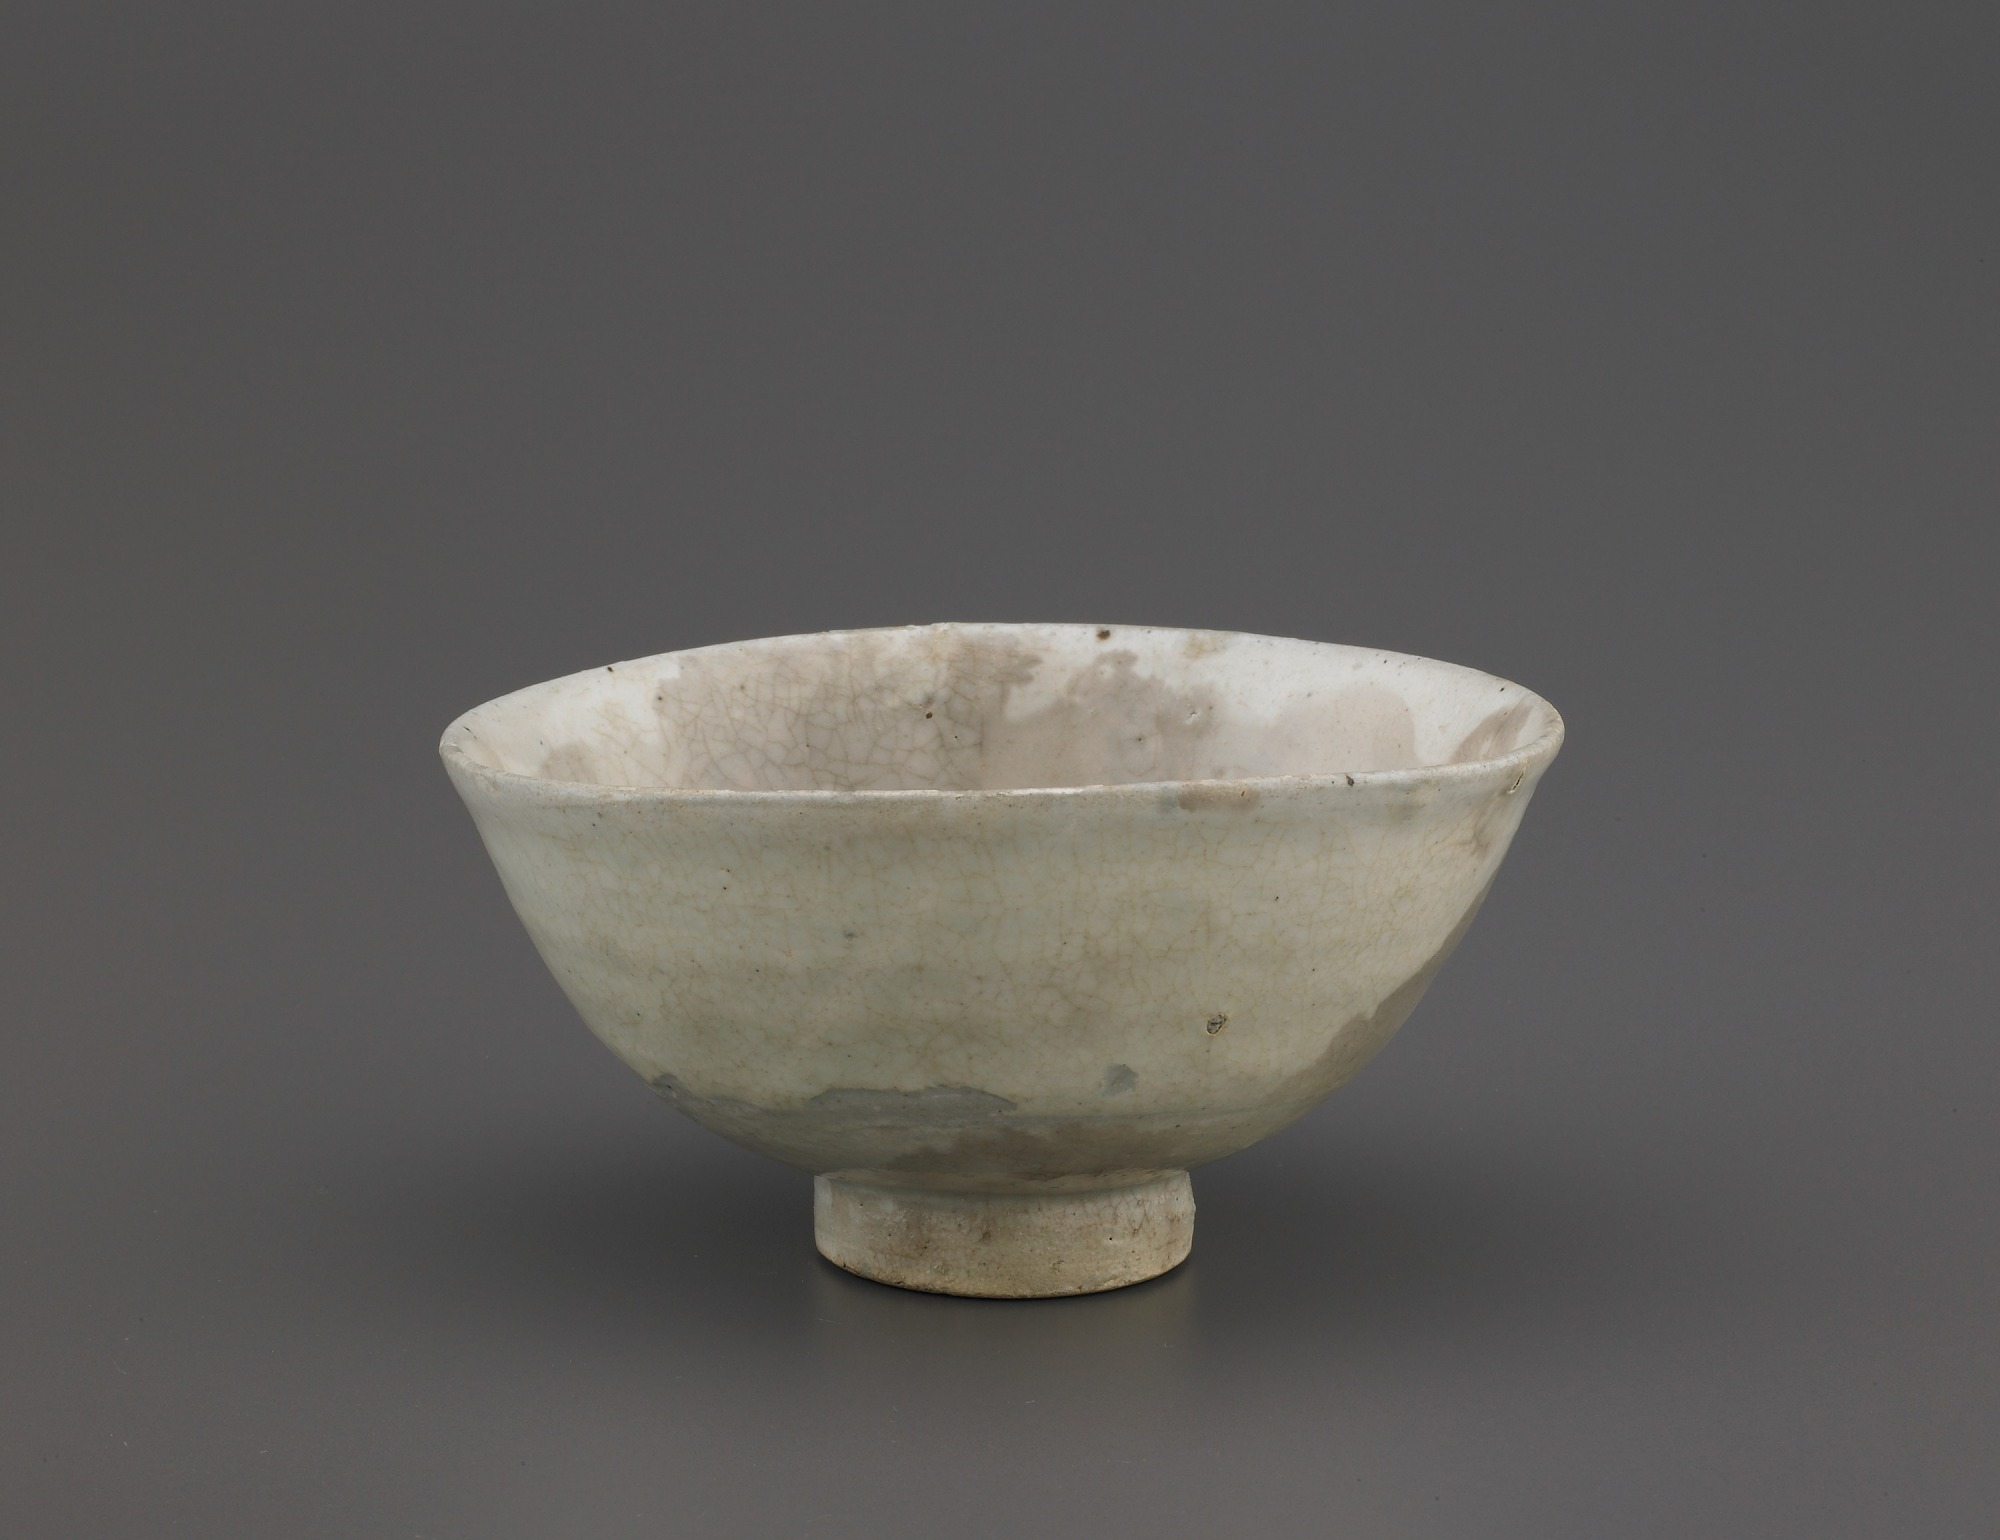 Punch'ong ware bowl, profile